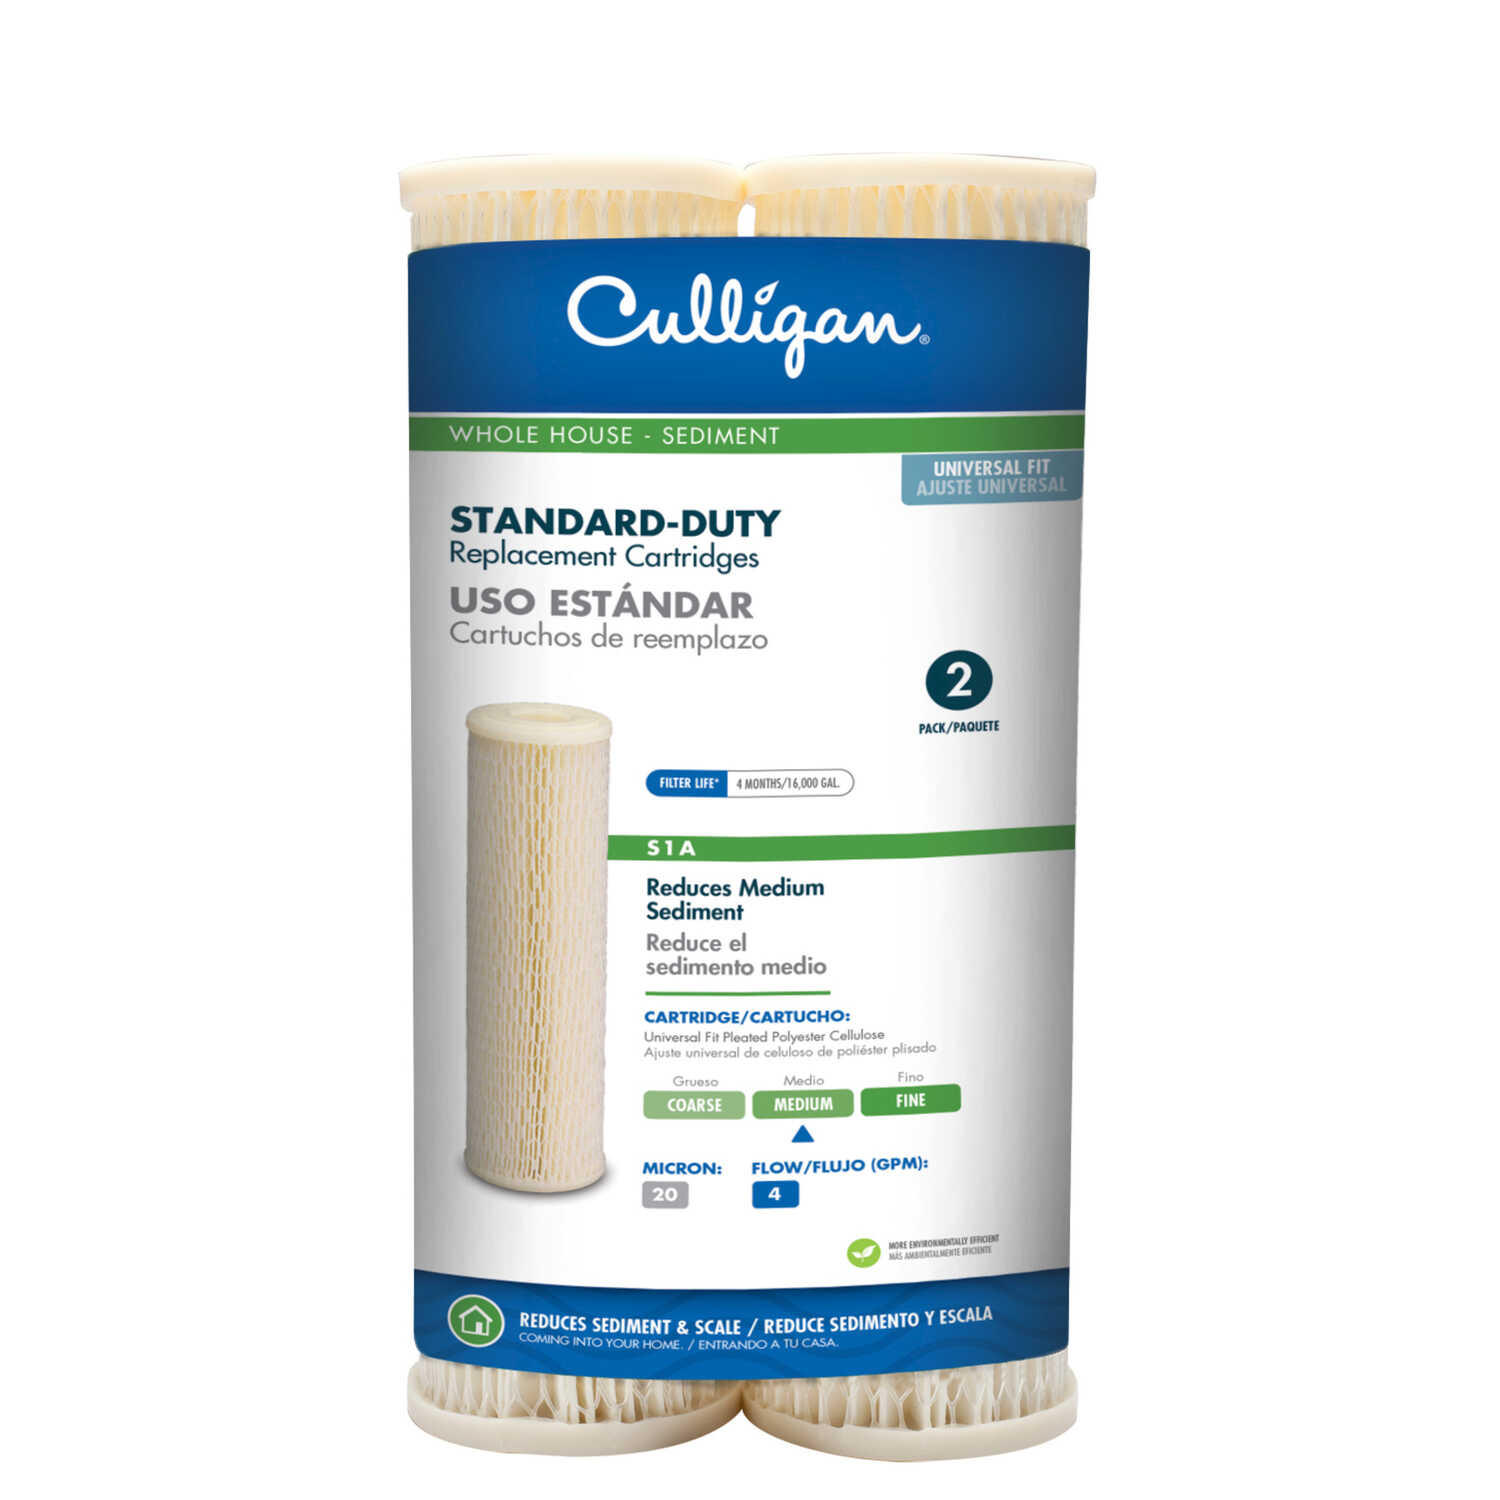 Culligan  Level 2 Sediment  Replacement Filter Cartridge  For Whole House 16000 gal.